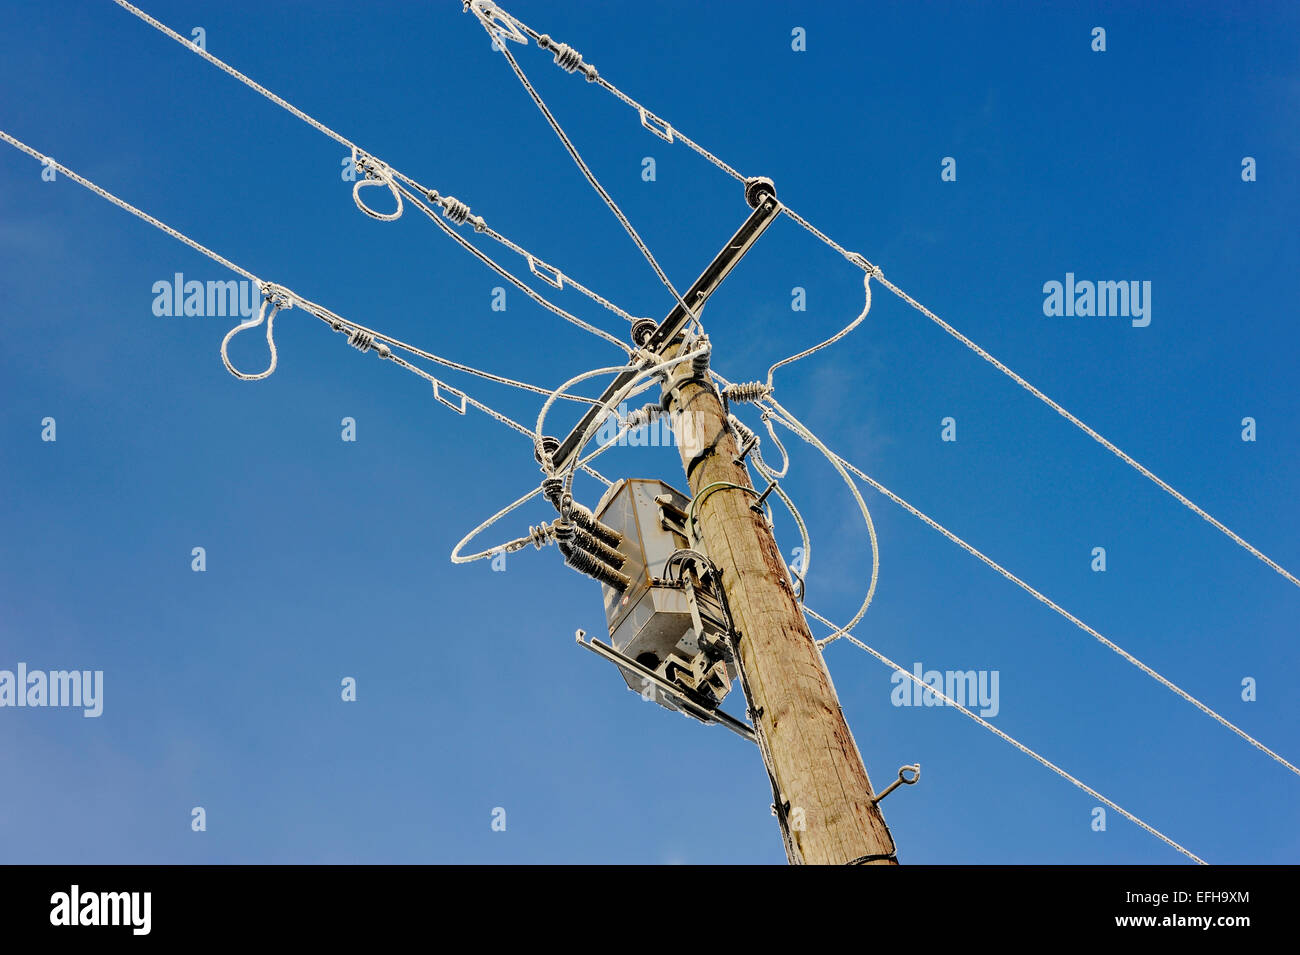 Powerlines covered with snow & frost against a blue sky during winter. - Stock Image